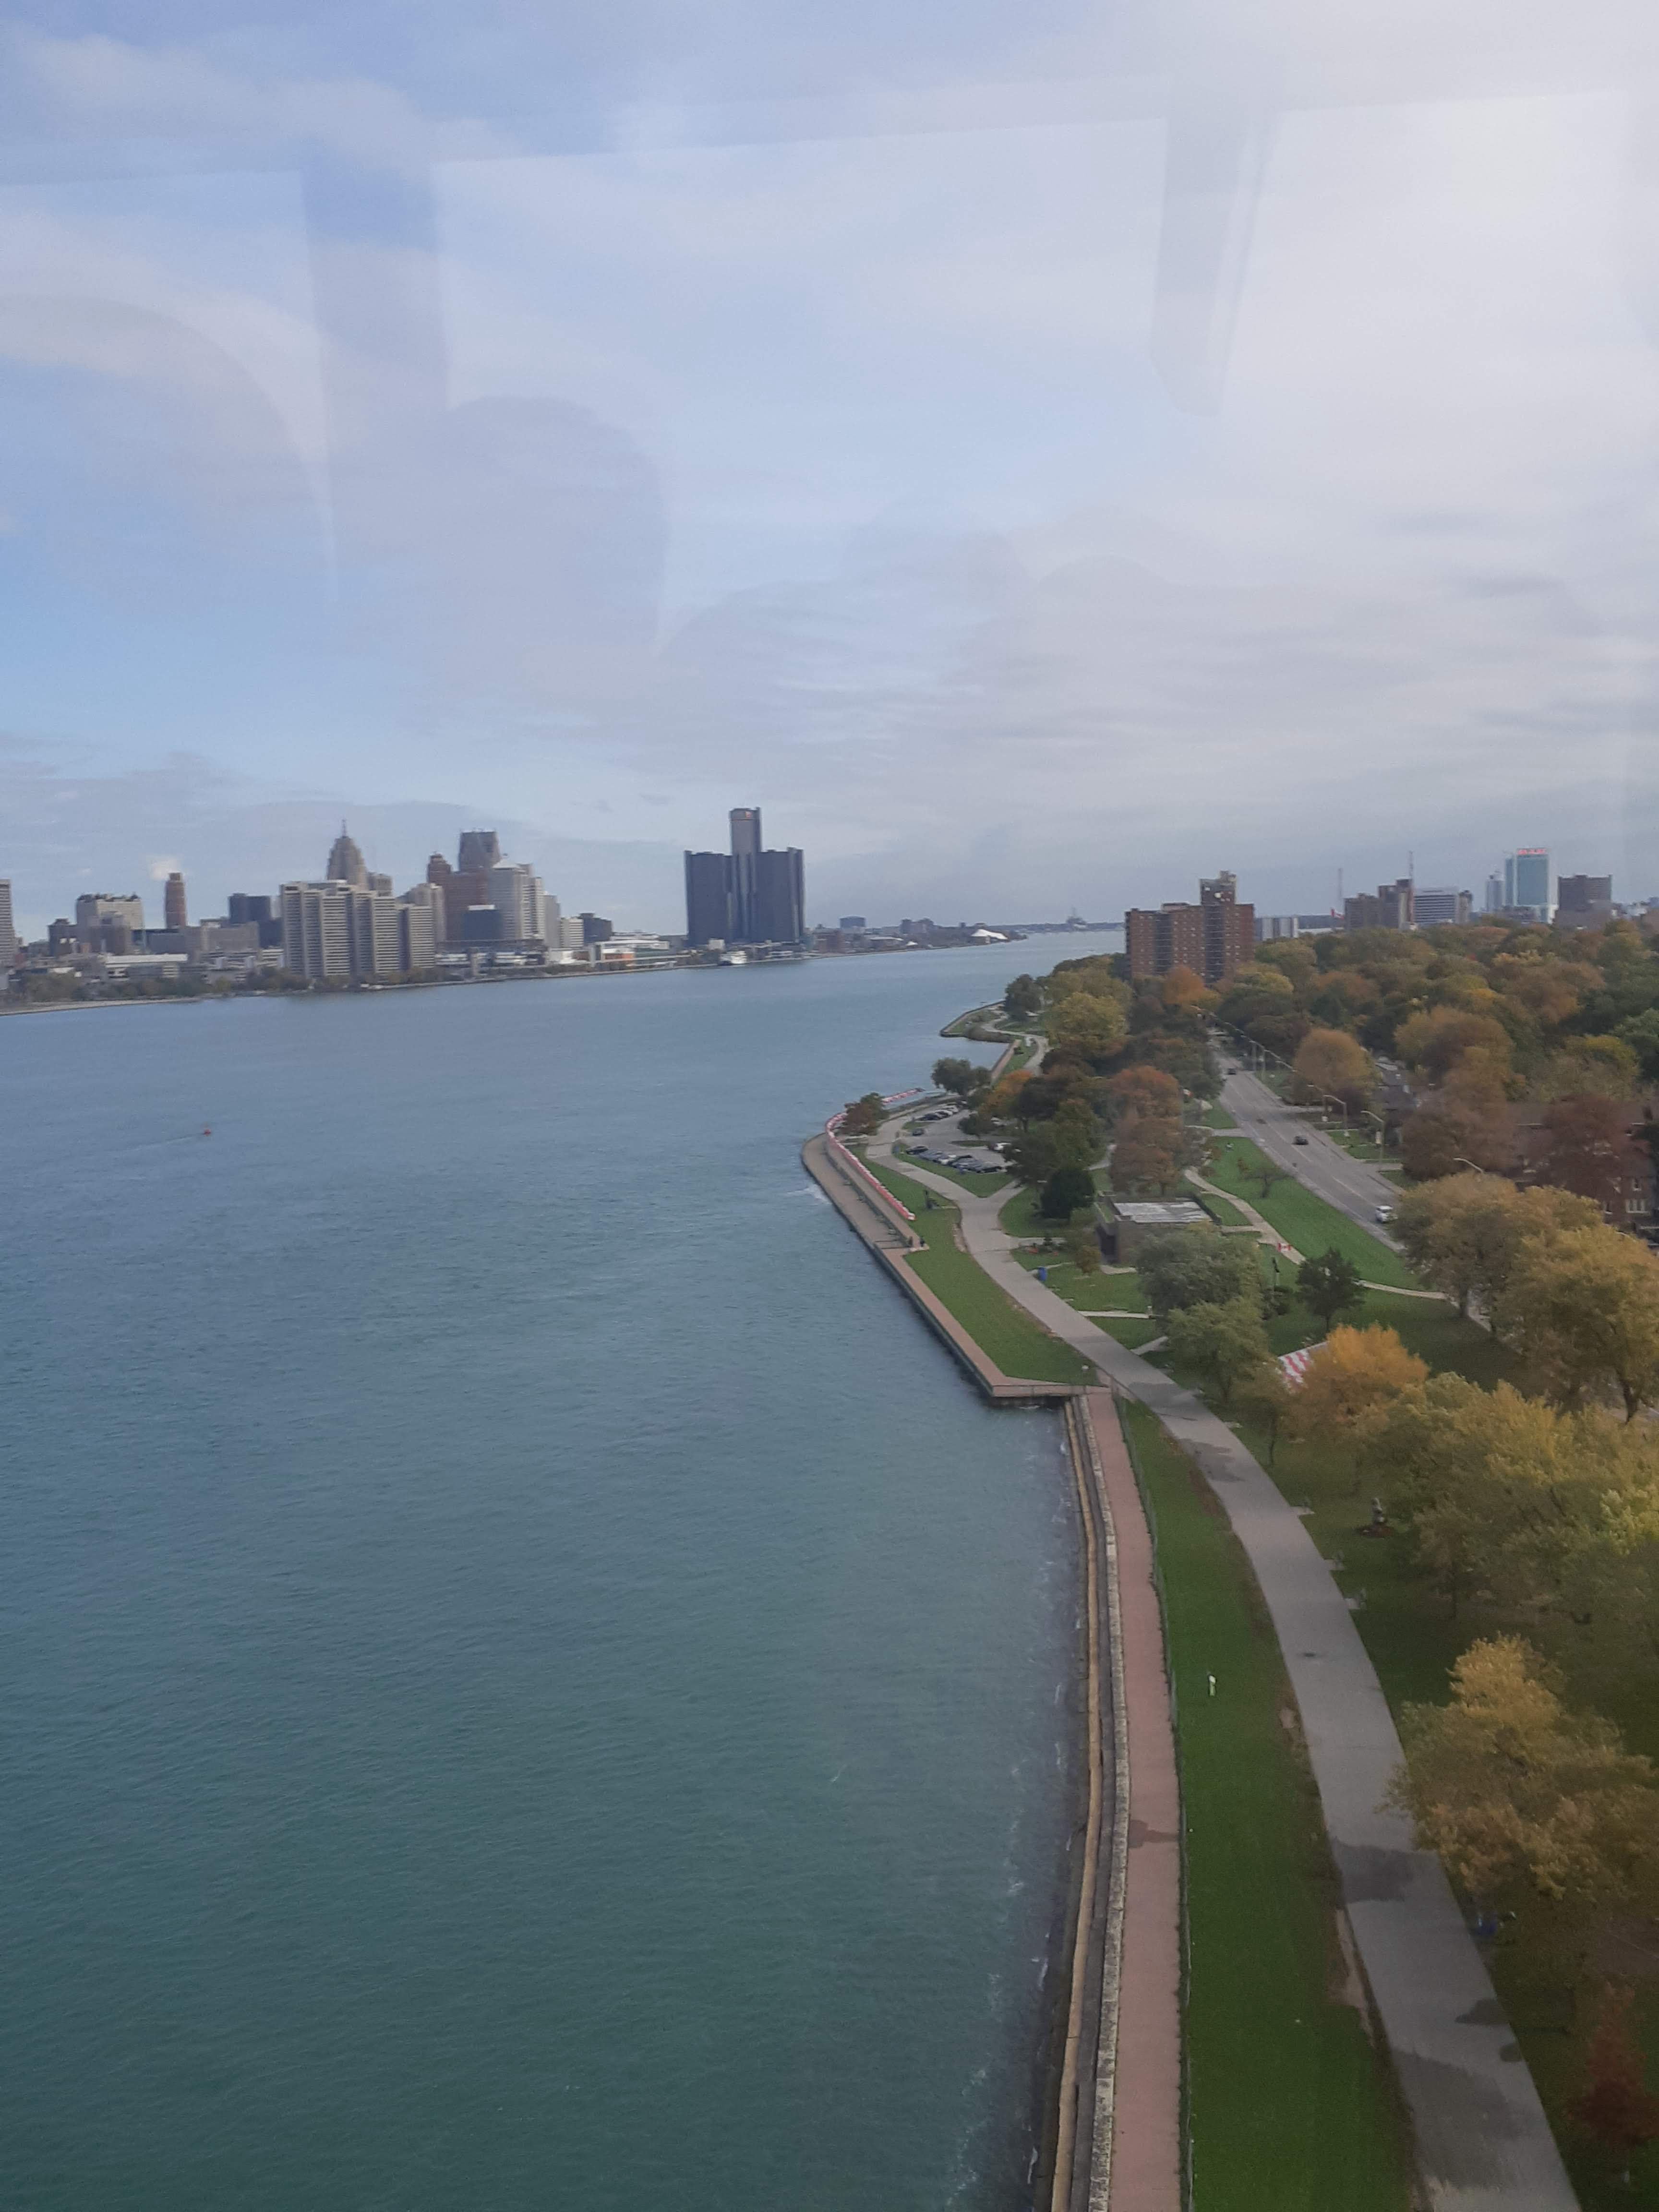 This is the Detroit river, with Detroit on the left and Windsor on the right. The Bibbs migrated from Detroit to Sandwich, and eventually settled in Windsor. The image demonstrates that while they migrated to a new country, the areas were very close.